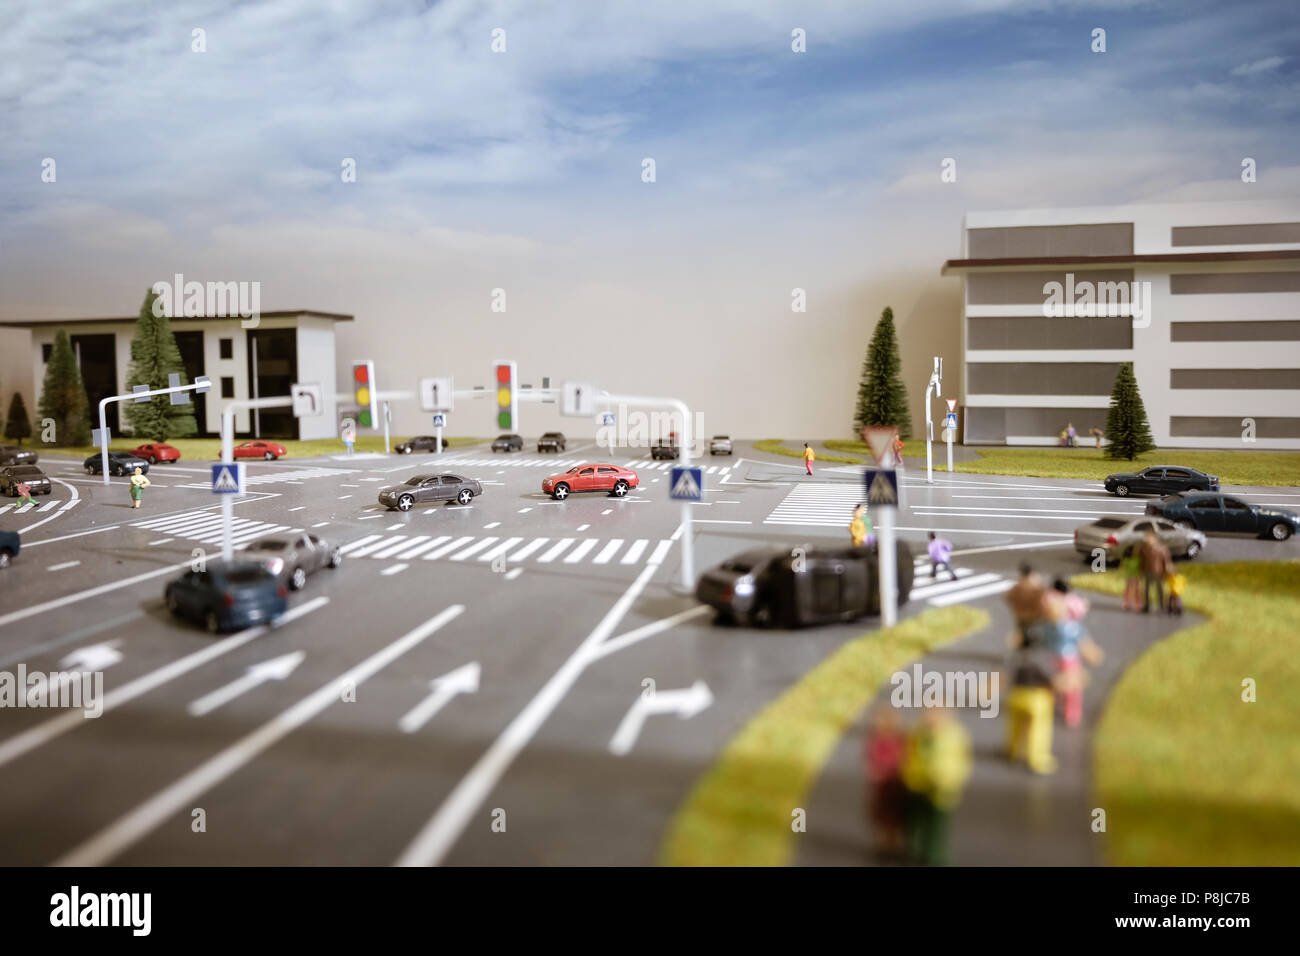 Toy model of a crossroad and traffic collision - Stock Image